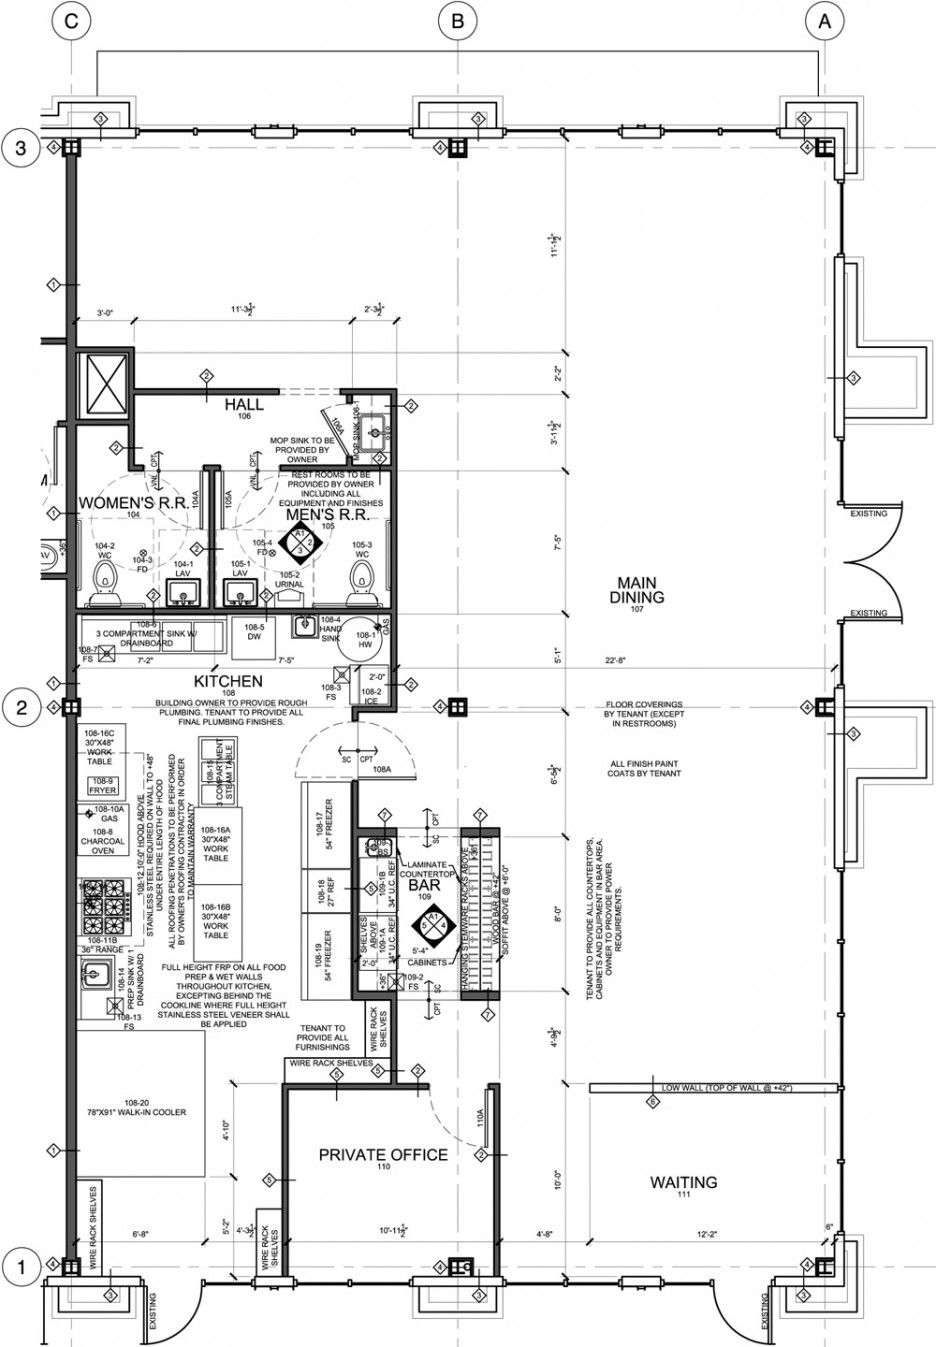 Pin By Pear0 On Architecture Restaurant Kitchen Design Restaurant Layout Kitchen Layout Plans